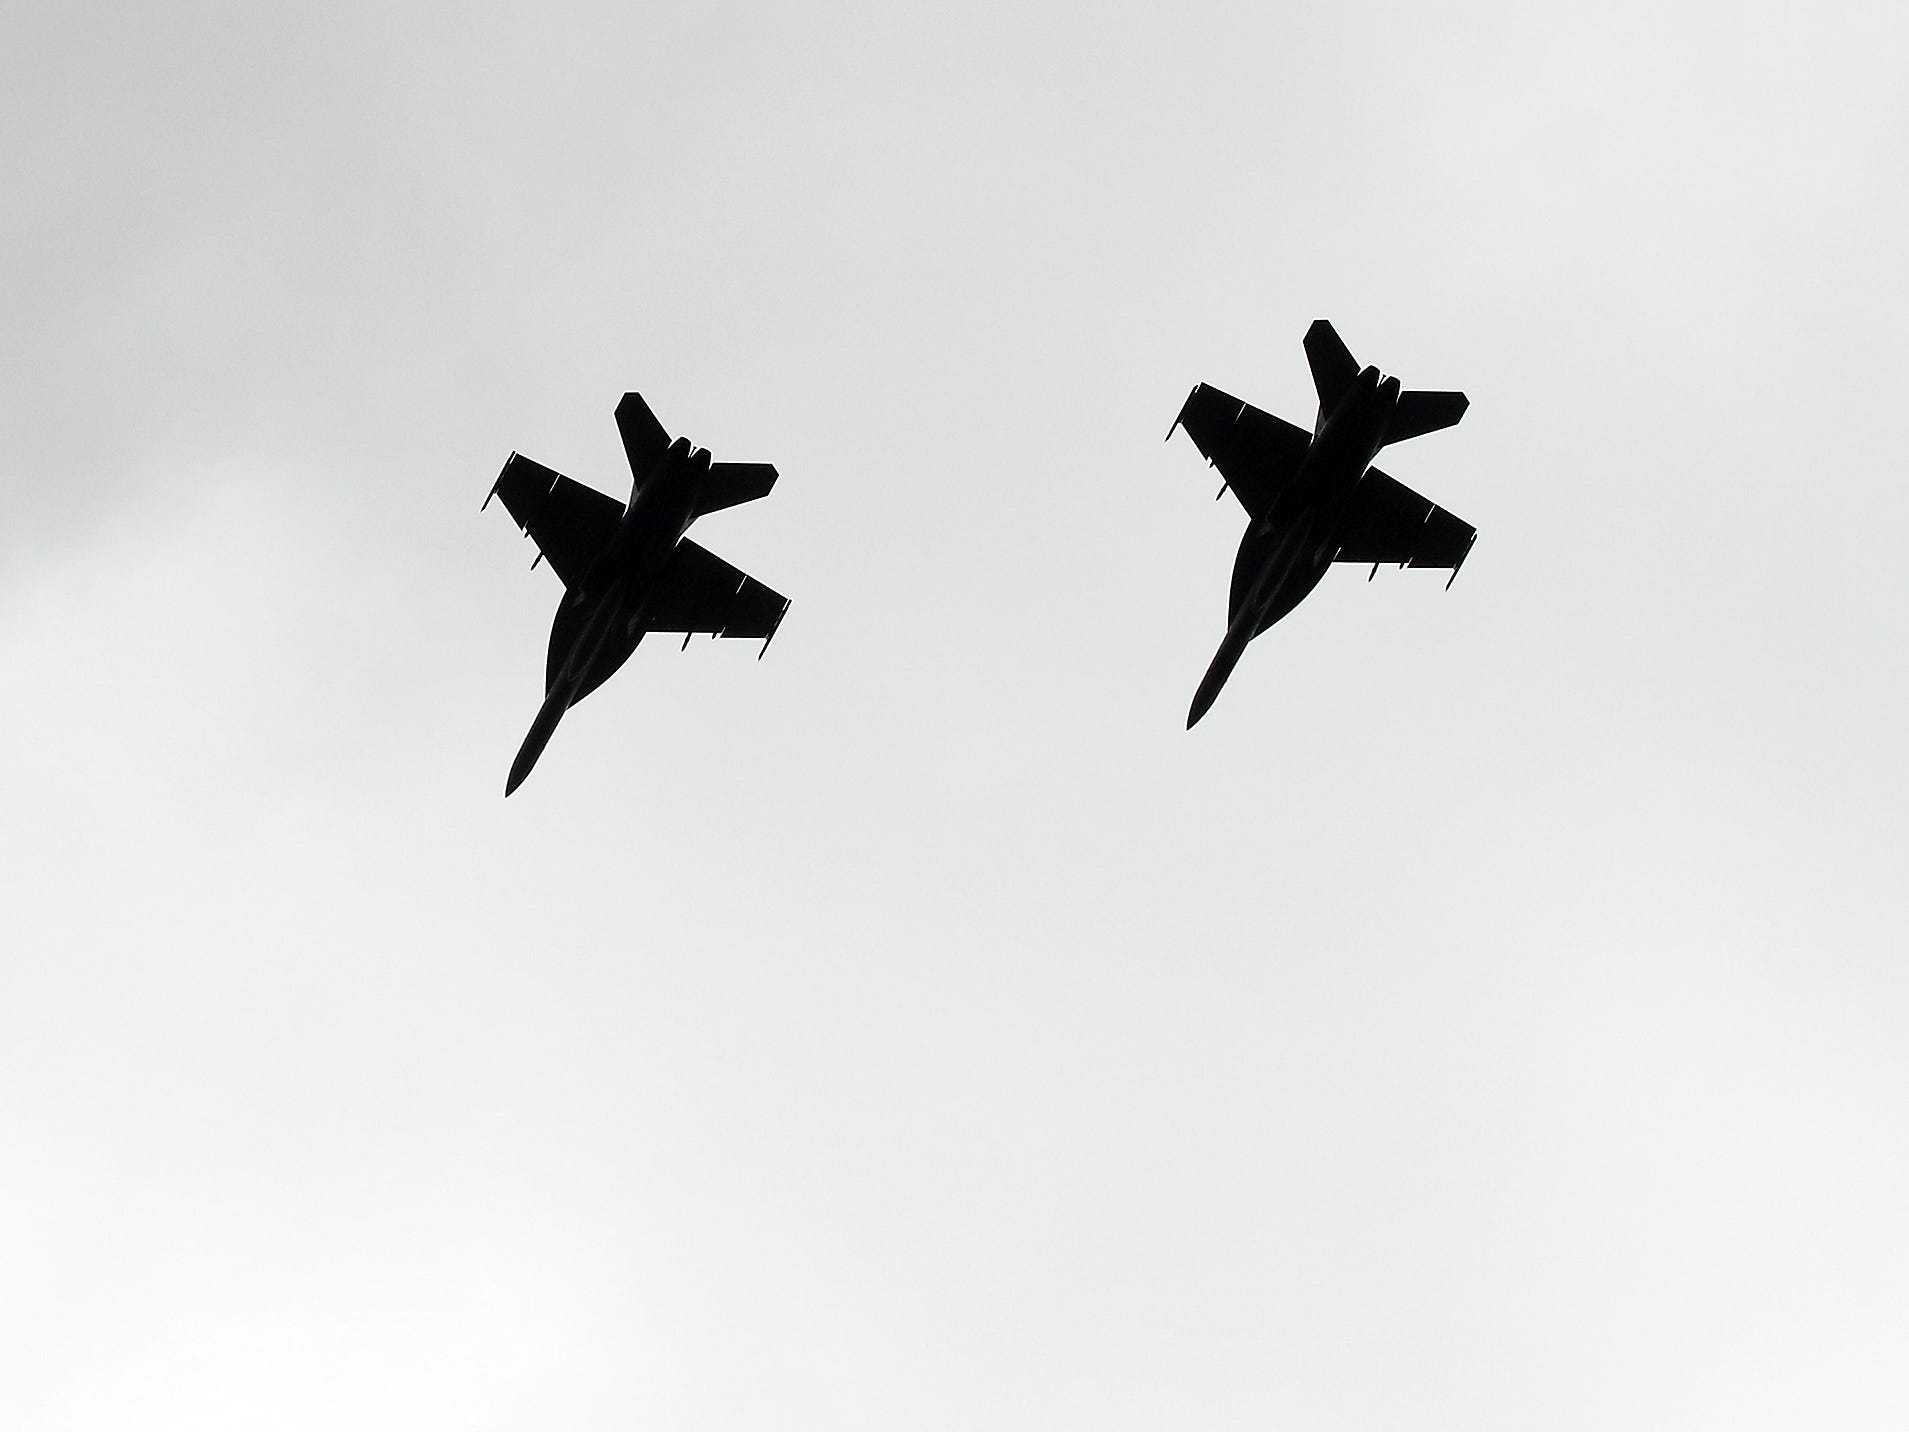 Two military fighter jets are silhouetted against the clouds as they fly over Bainbridge Island's Fay Bainbridge Park on Saturday, August 11, 2018.